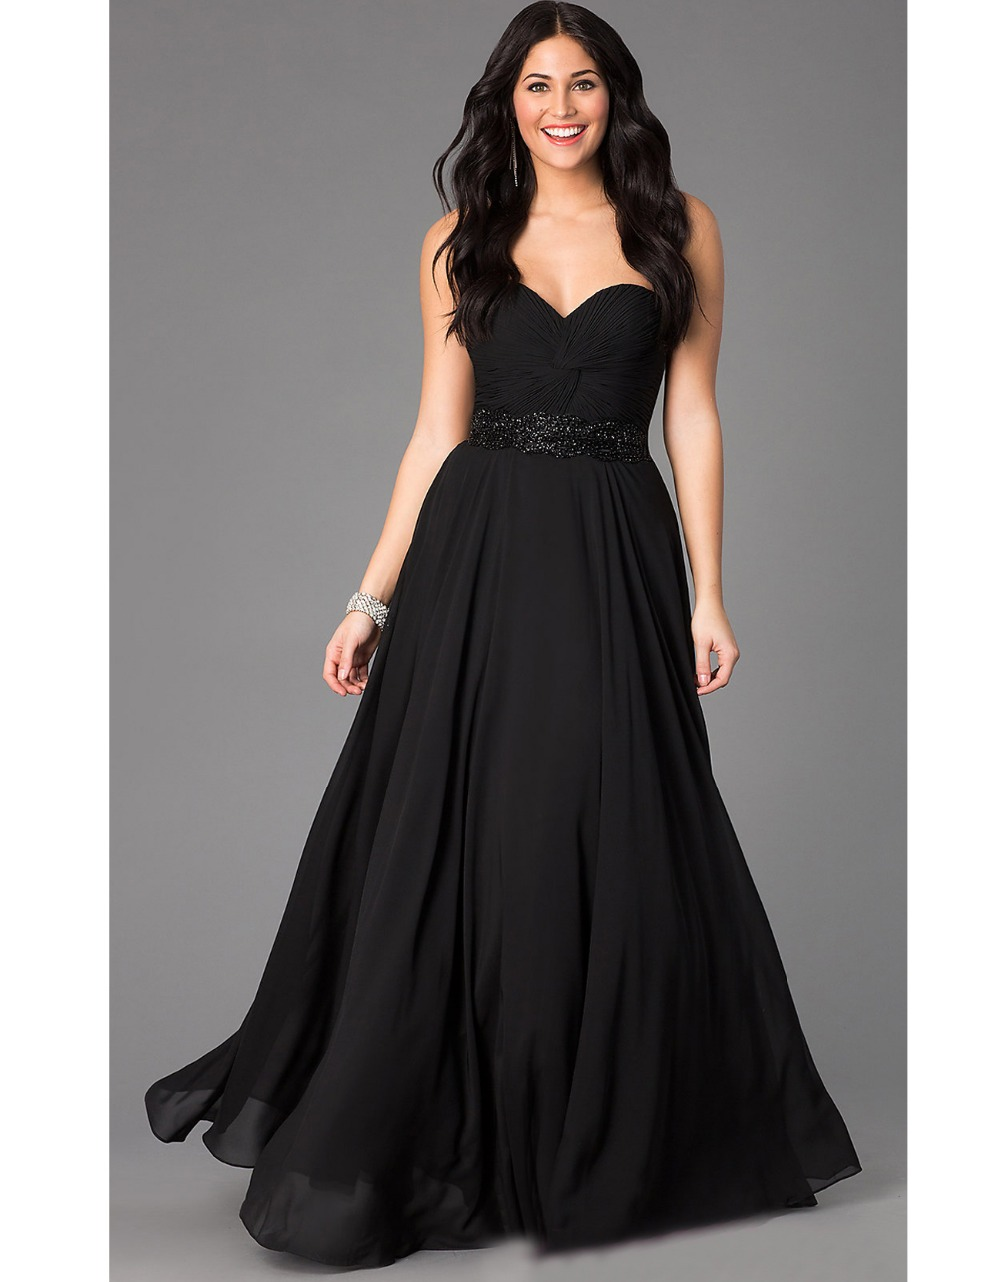 Long Black Masquerade Dress Prom Abendkleider 2015 Crystal